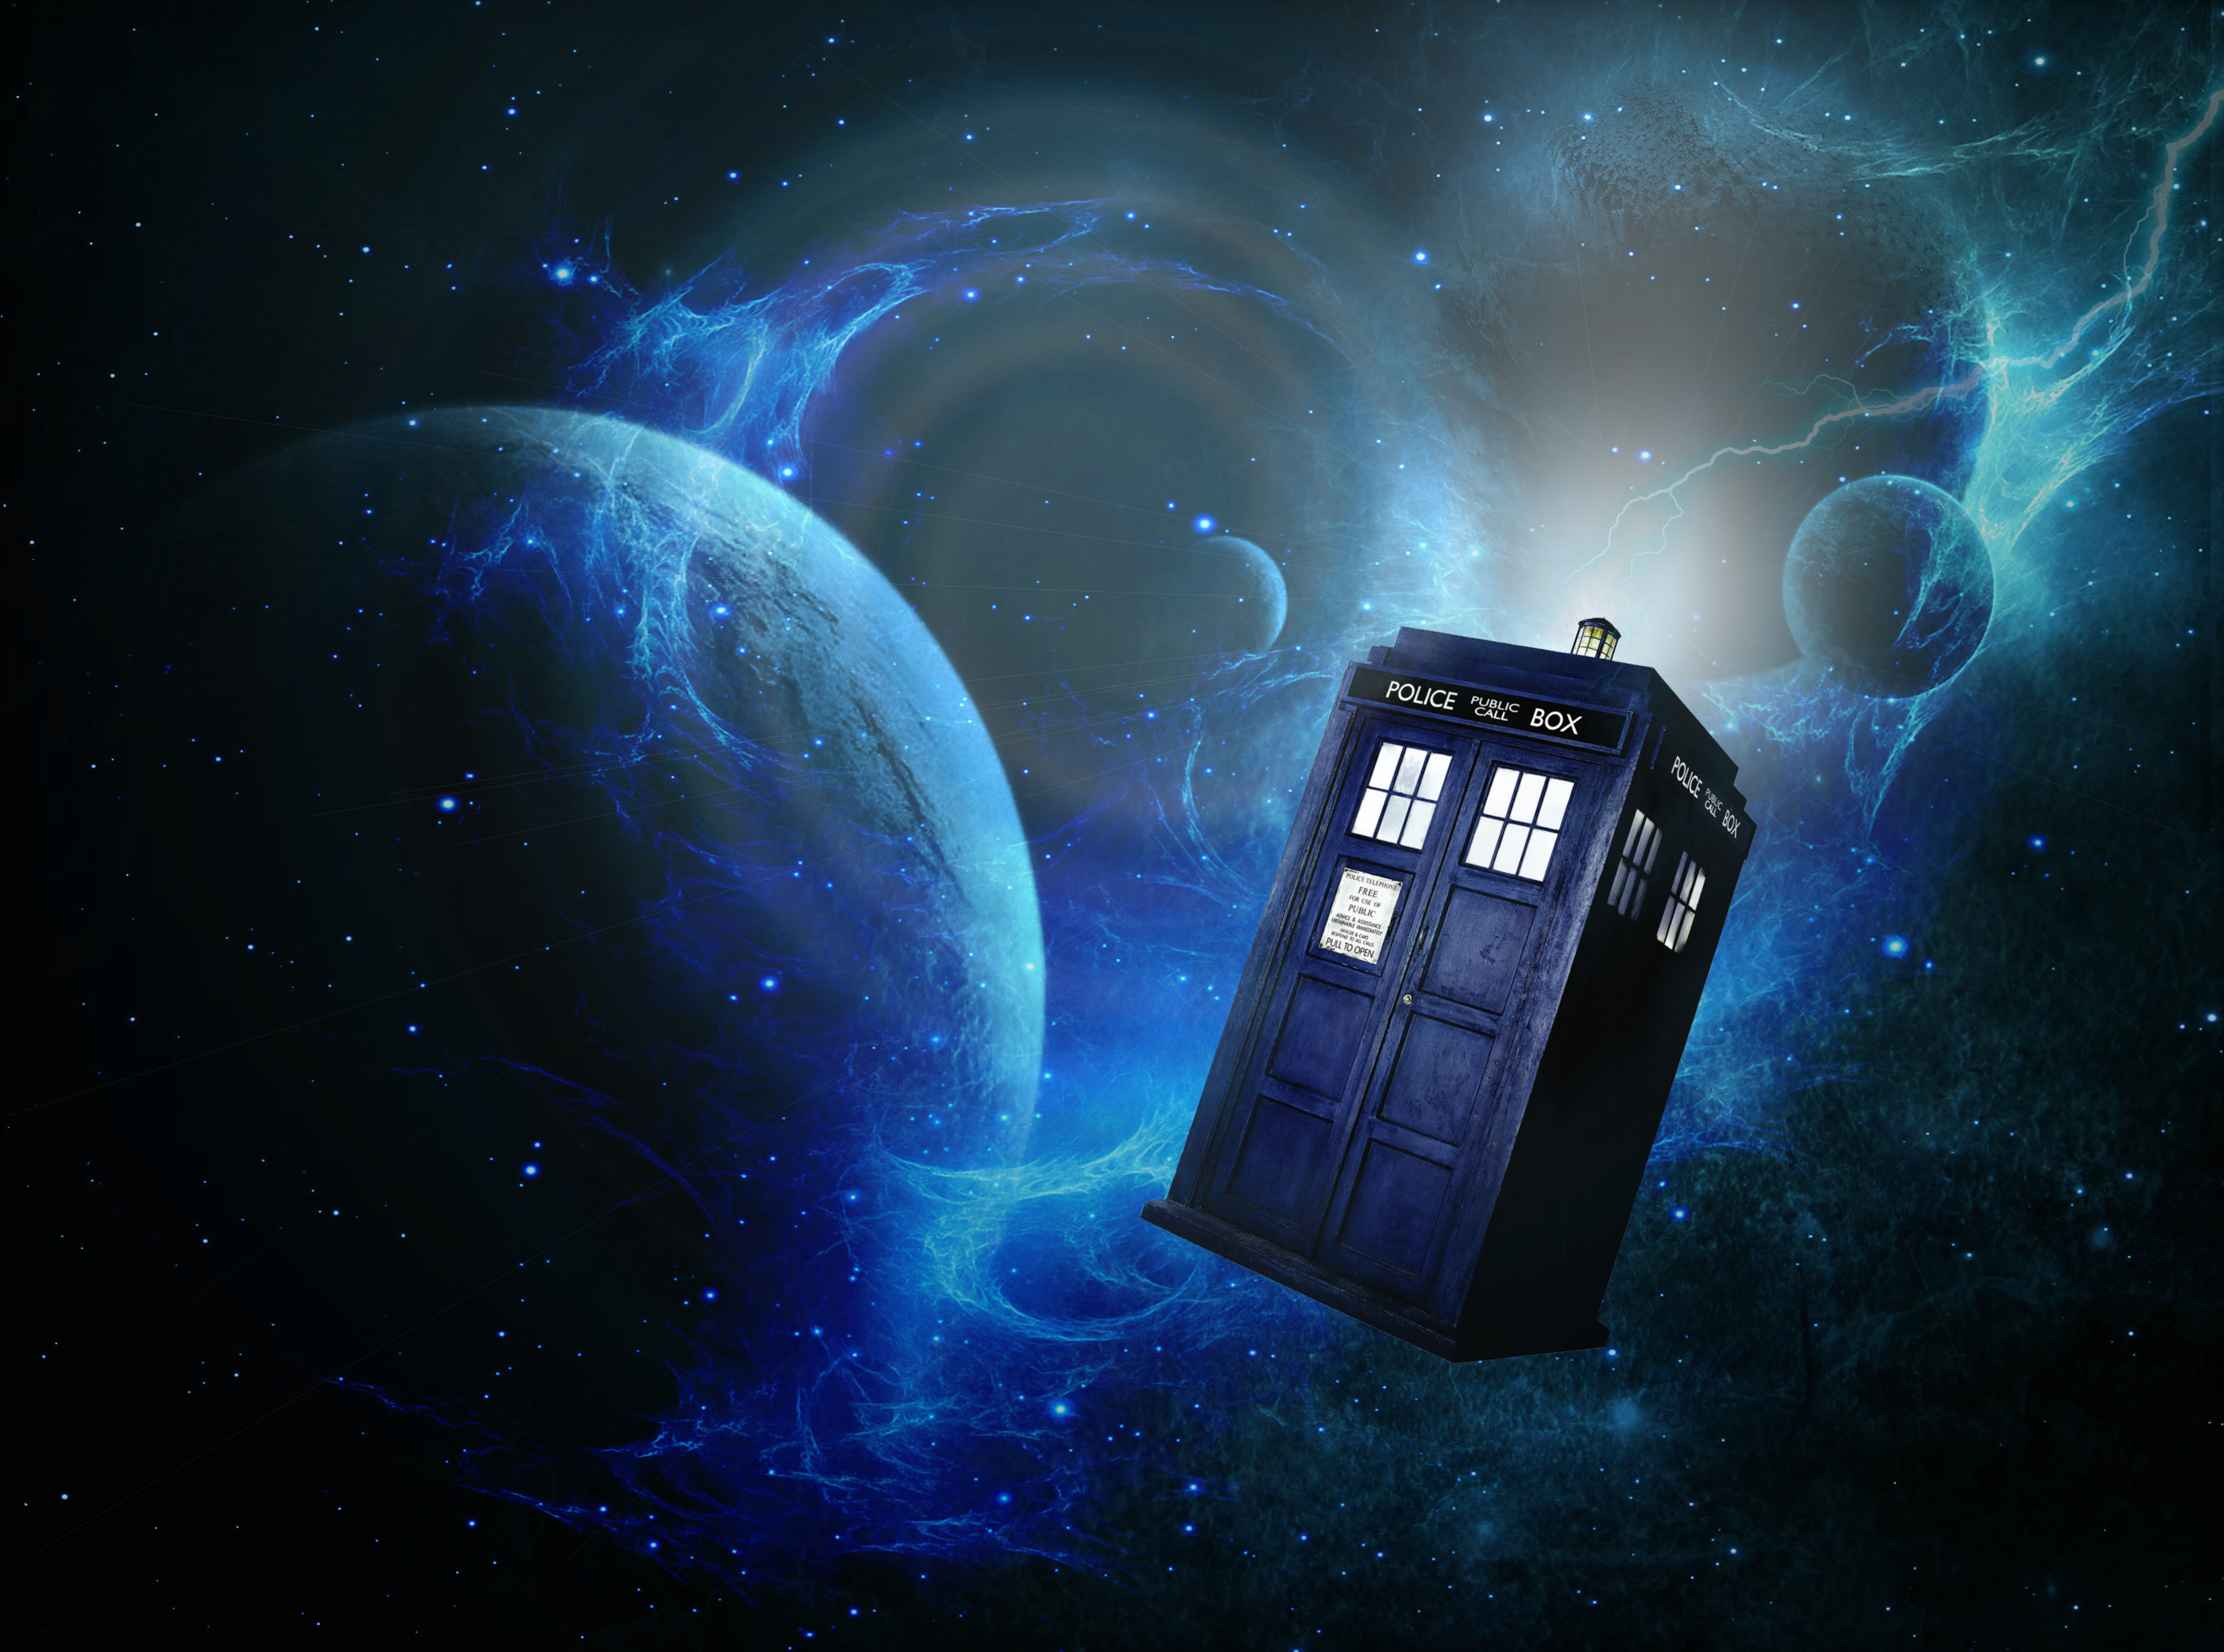 Doctor Who Wallpapers High Resolution and Quality Download 2638x1960